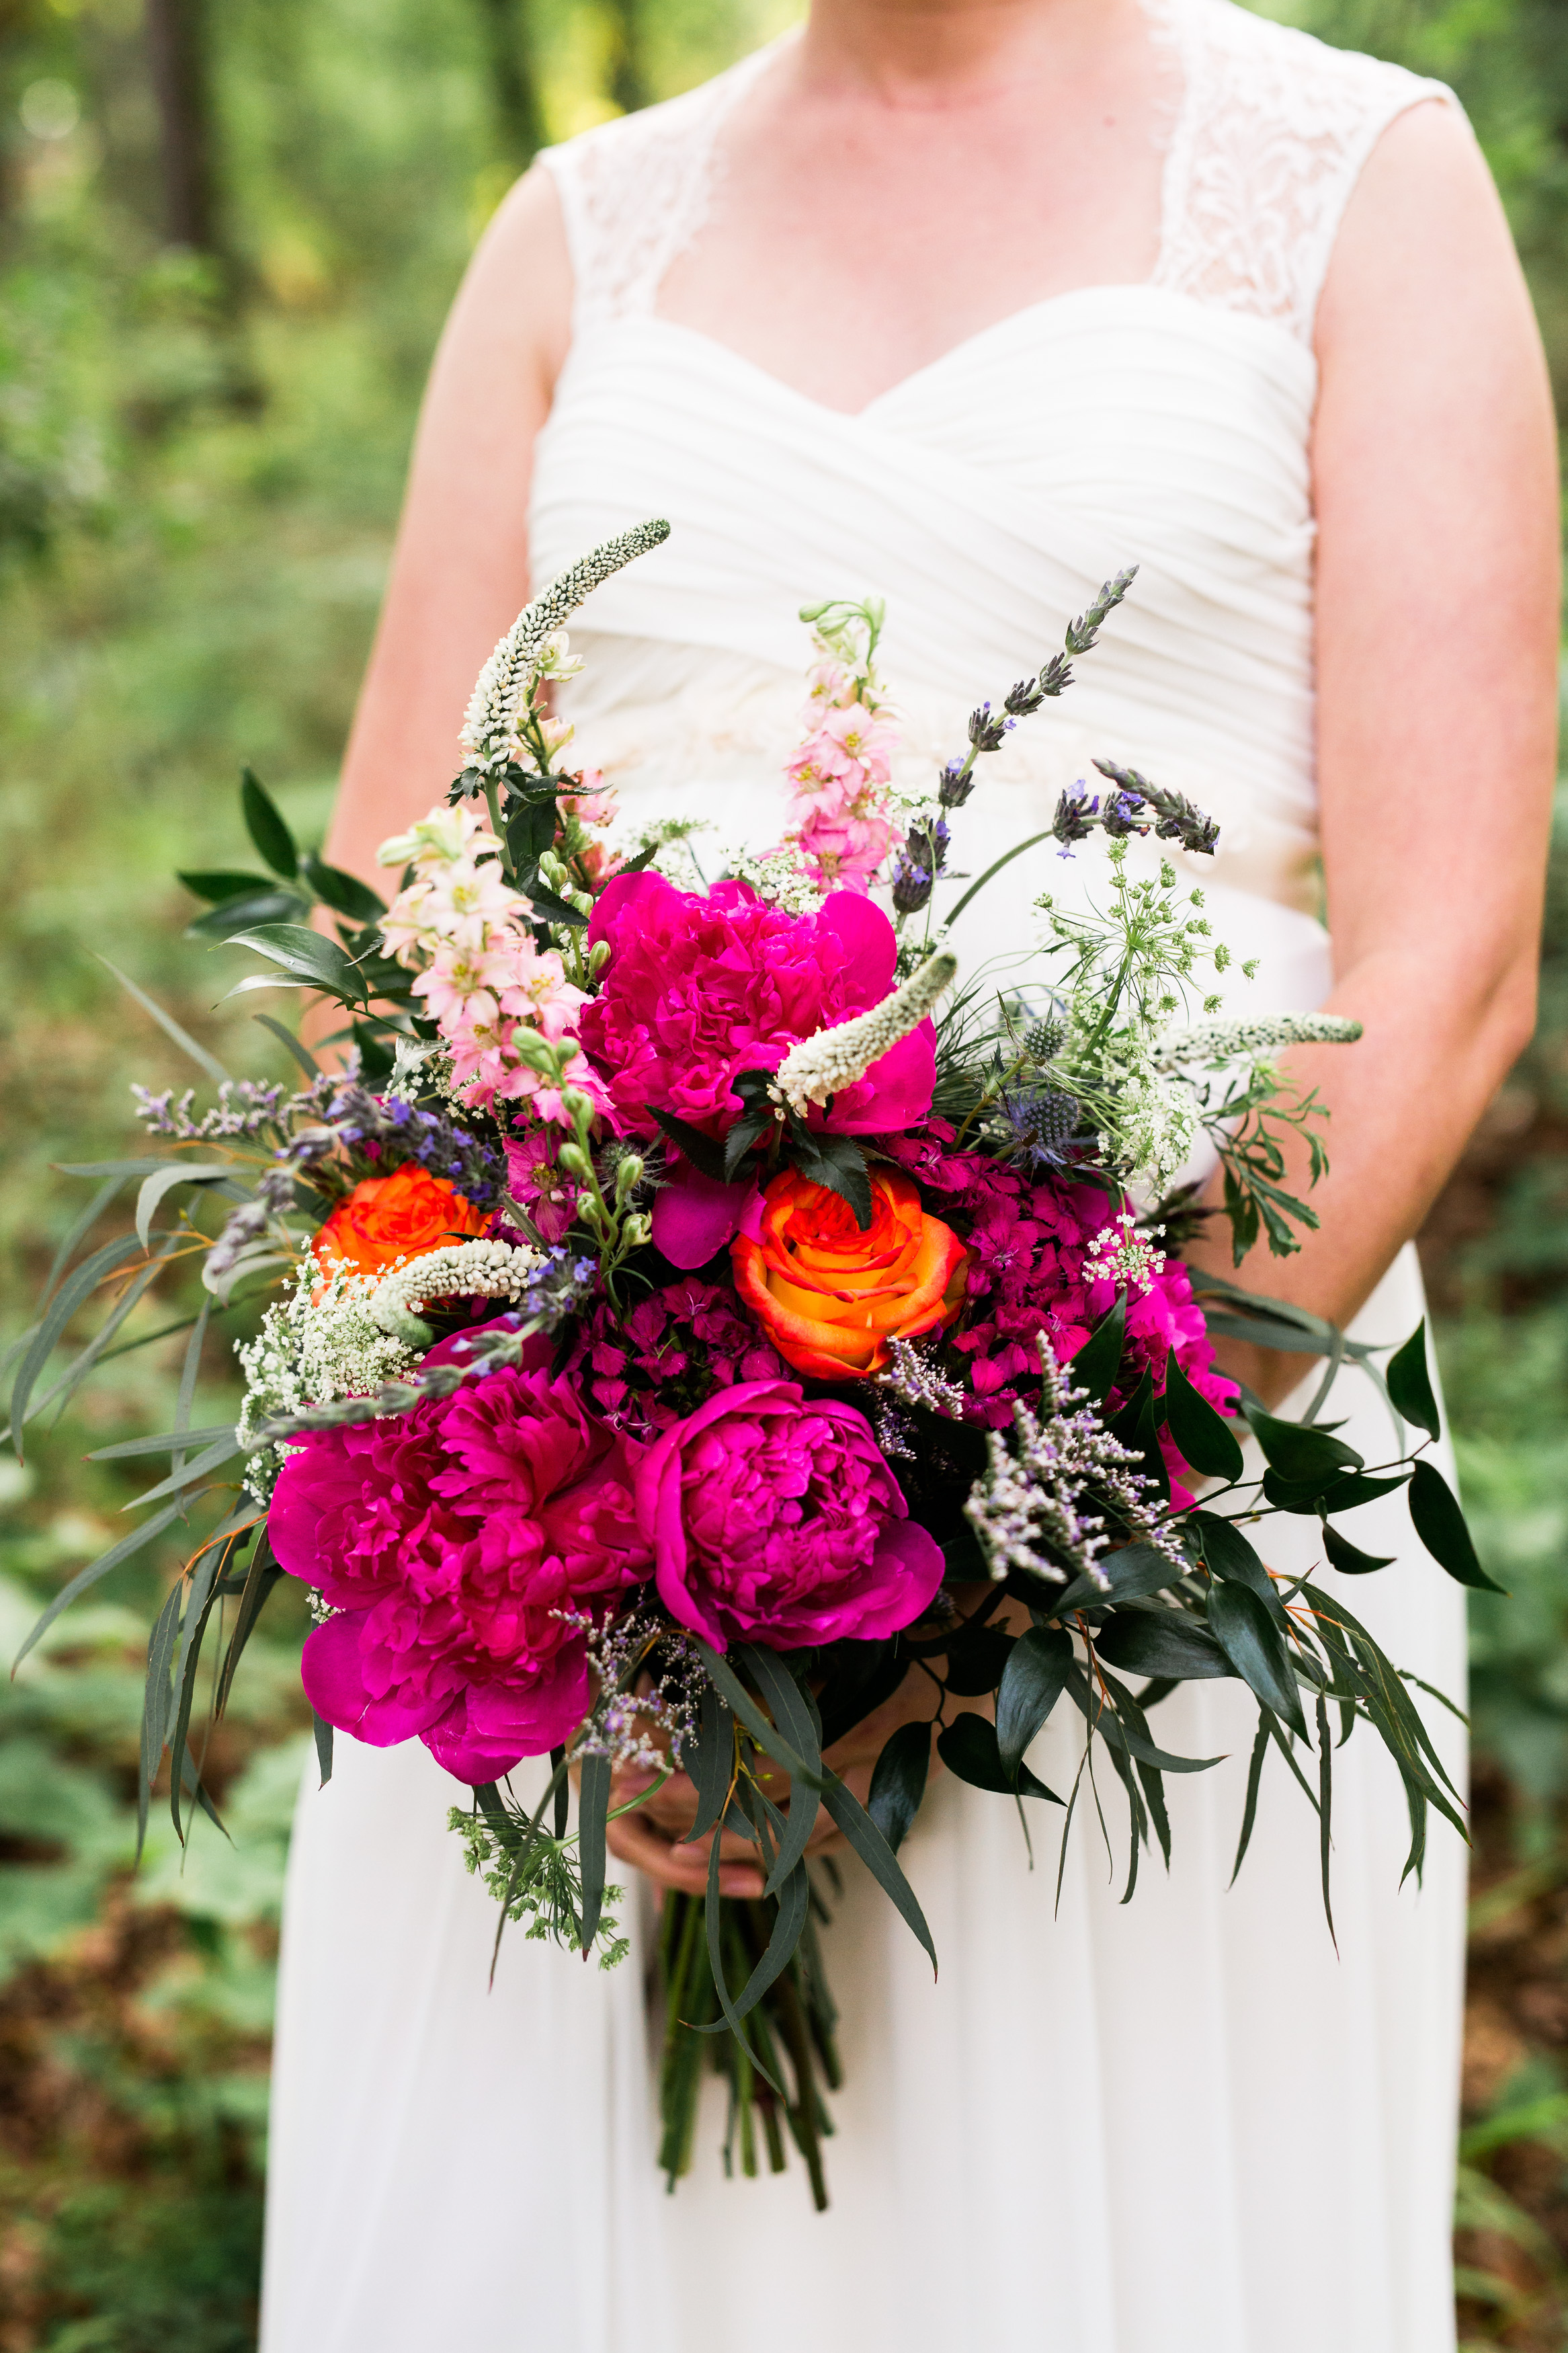 oklahoma wedding southeastern oklahoma saris colors diy nature norman wedding photography beavers bend mccurtain county decor big pink bouquet peonies roses